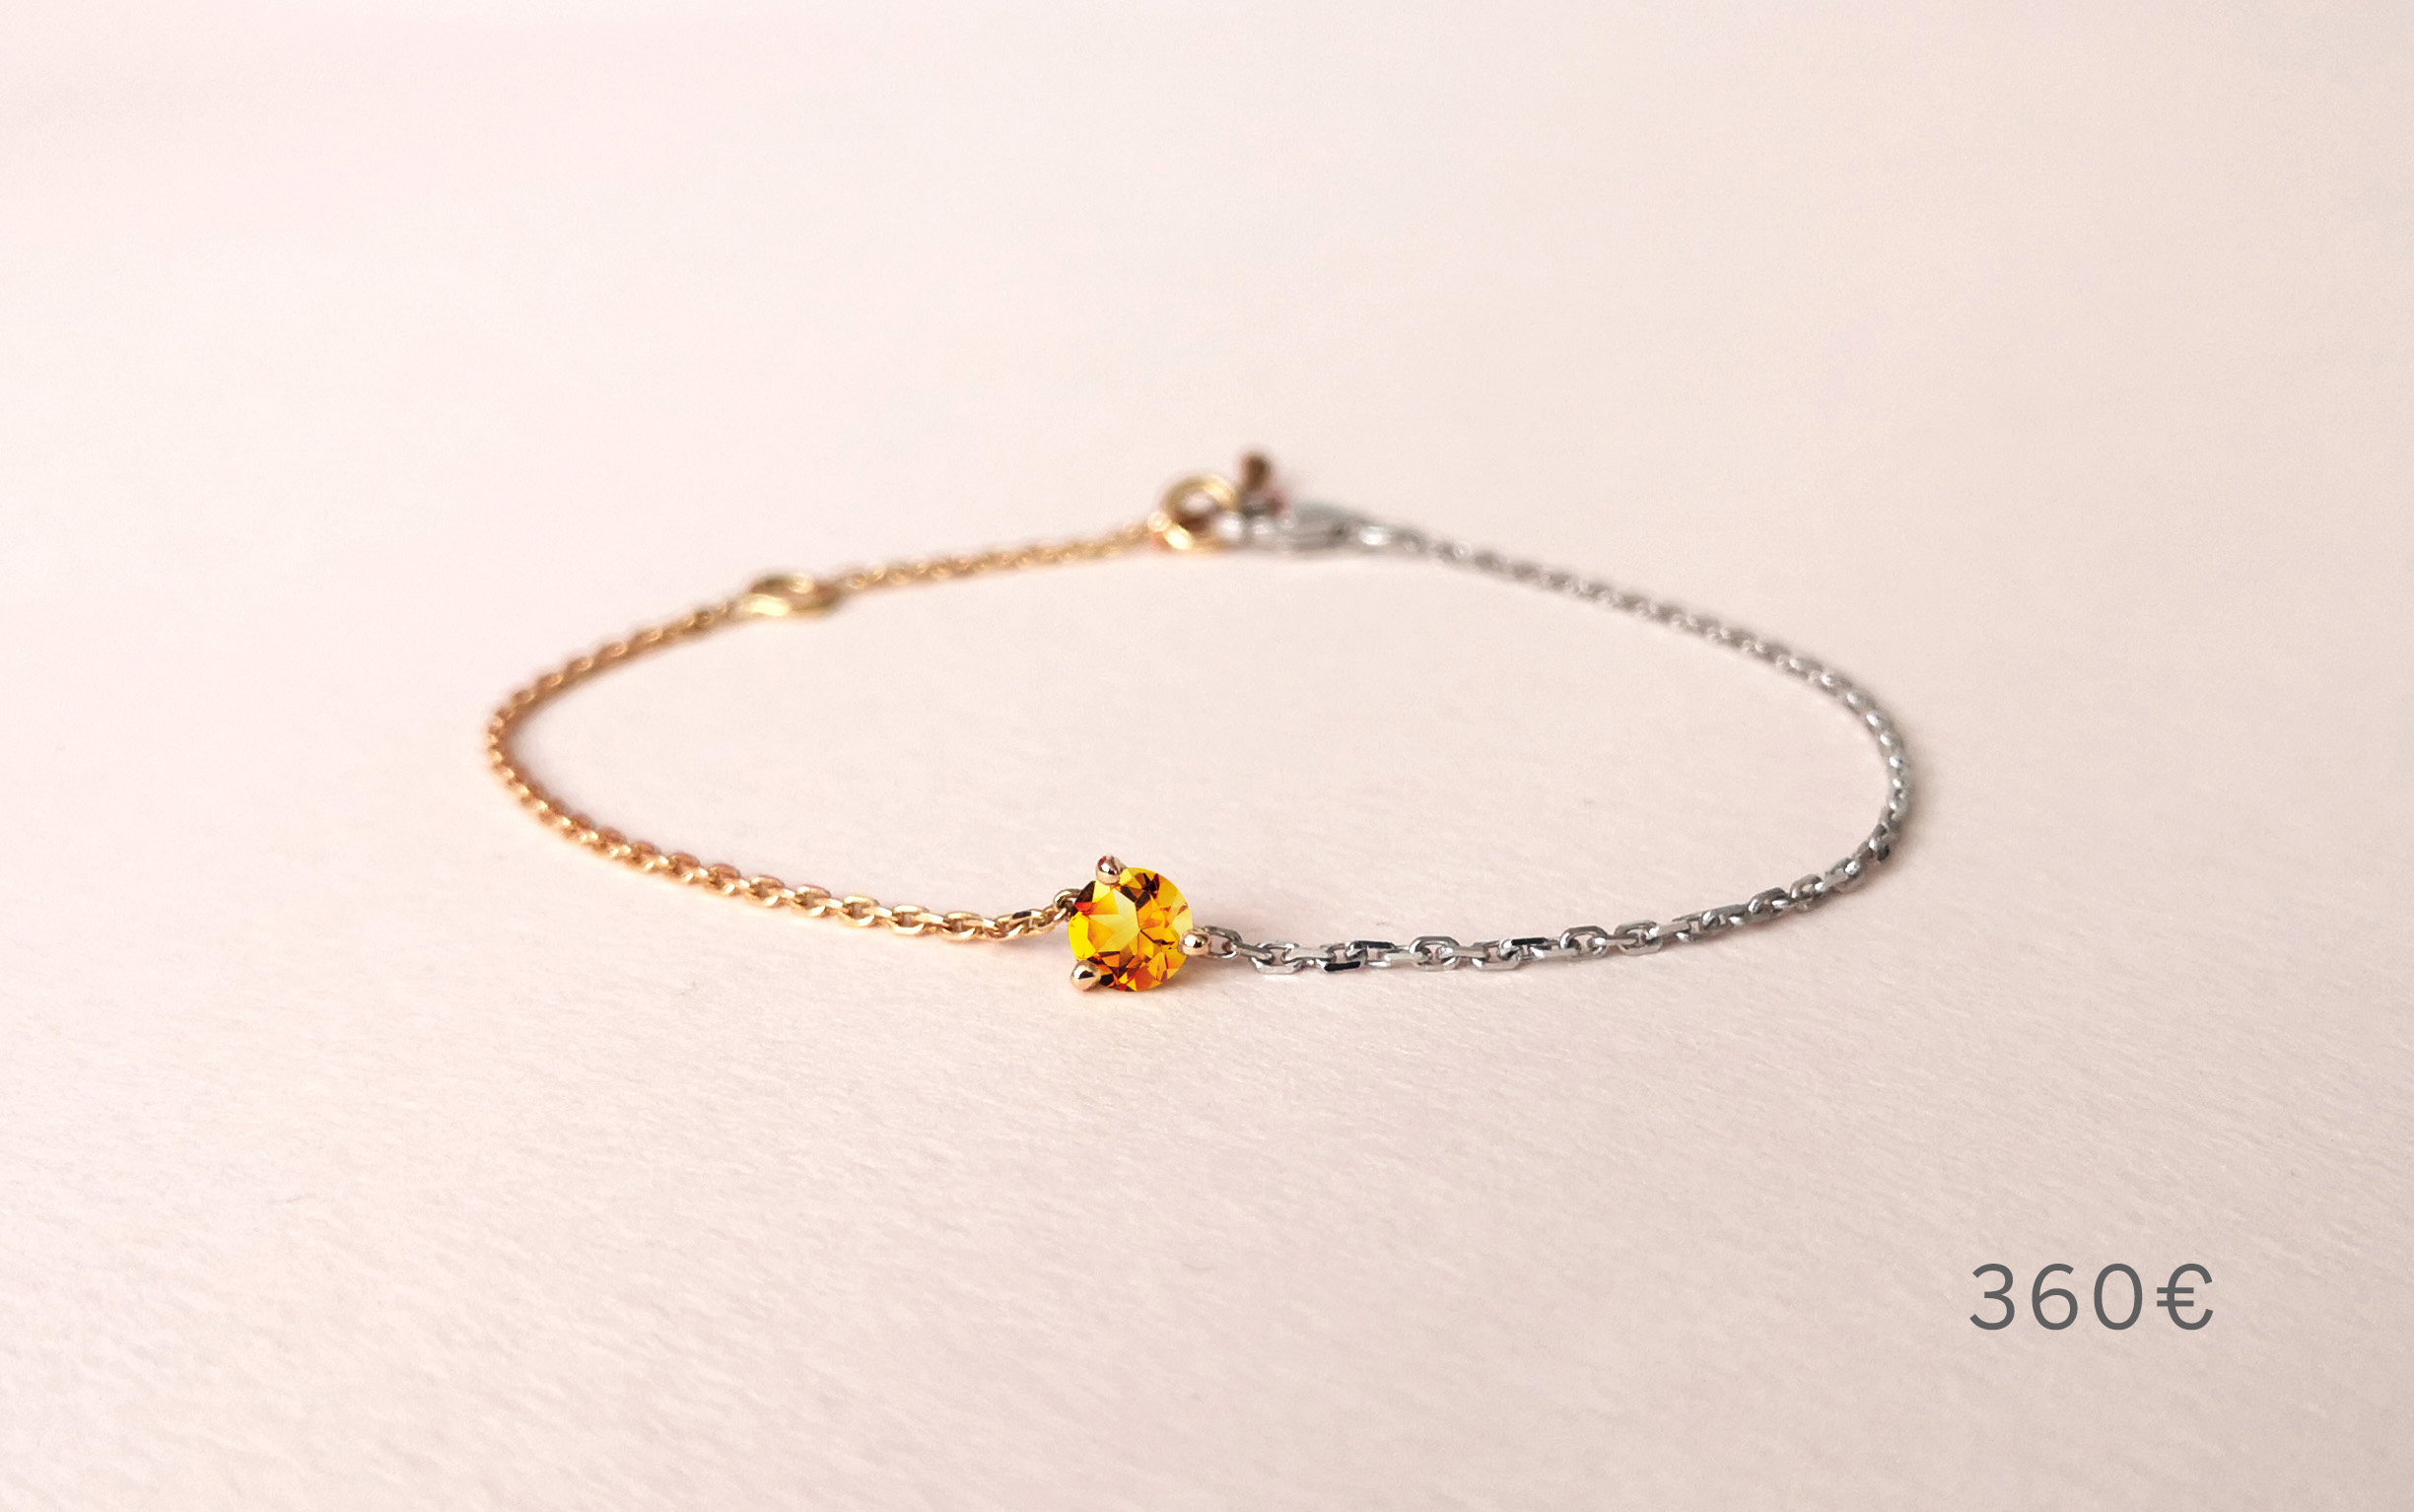 Bracelet Douce Echappée citrine, Collection Weekends Express - Courpré Joaillerie - The Explorative Fine Jewelry